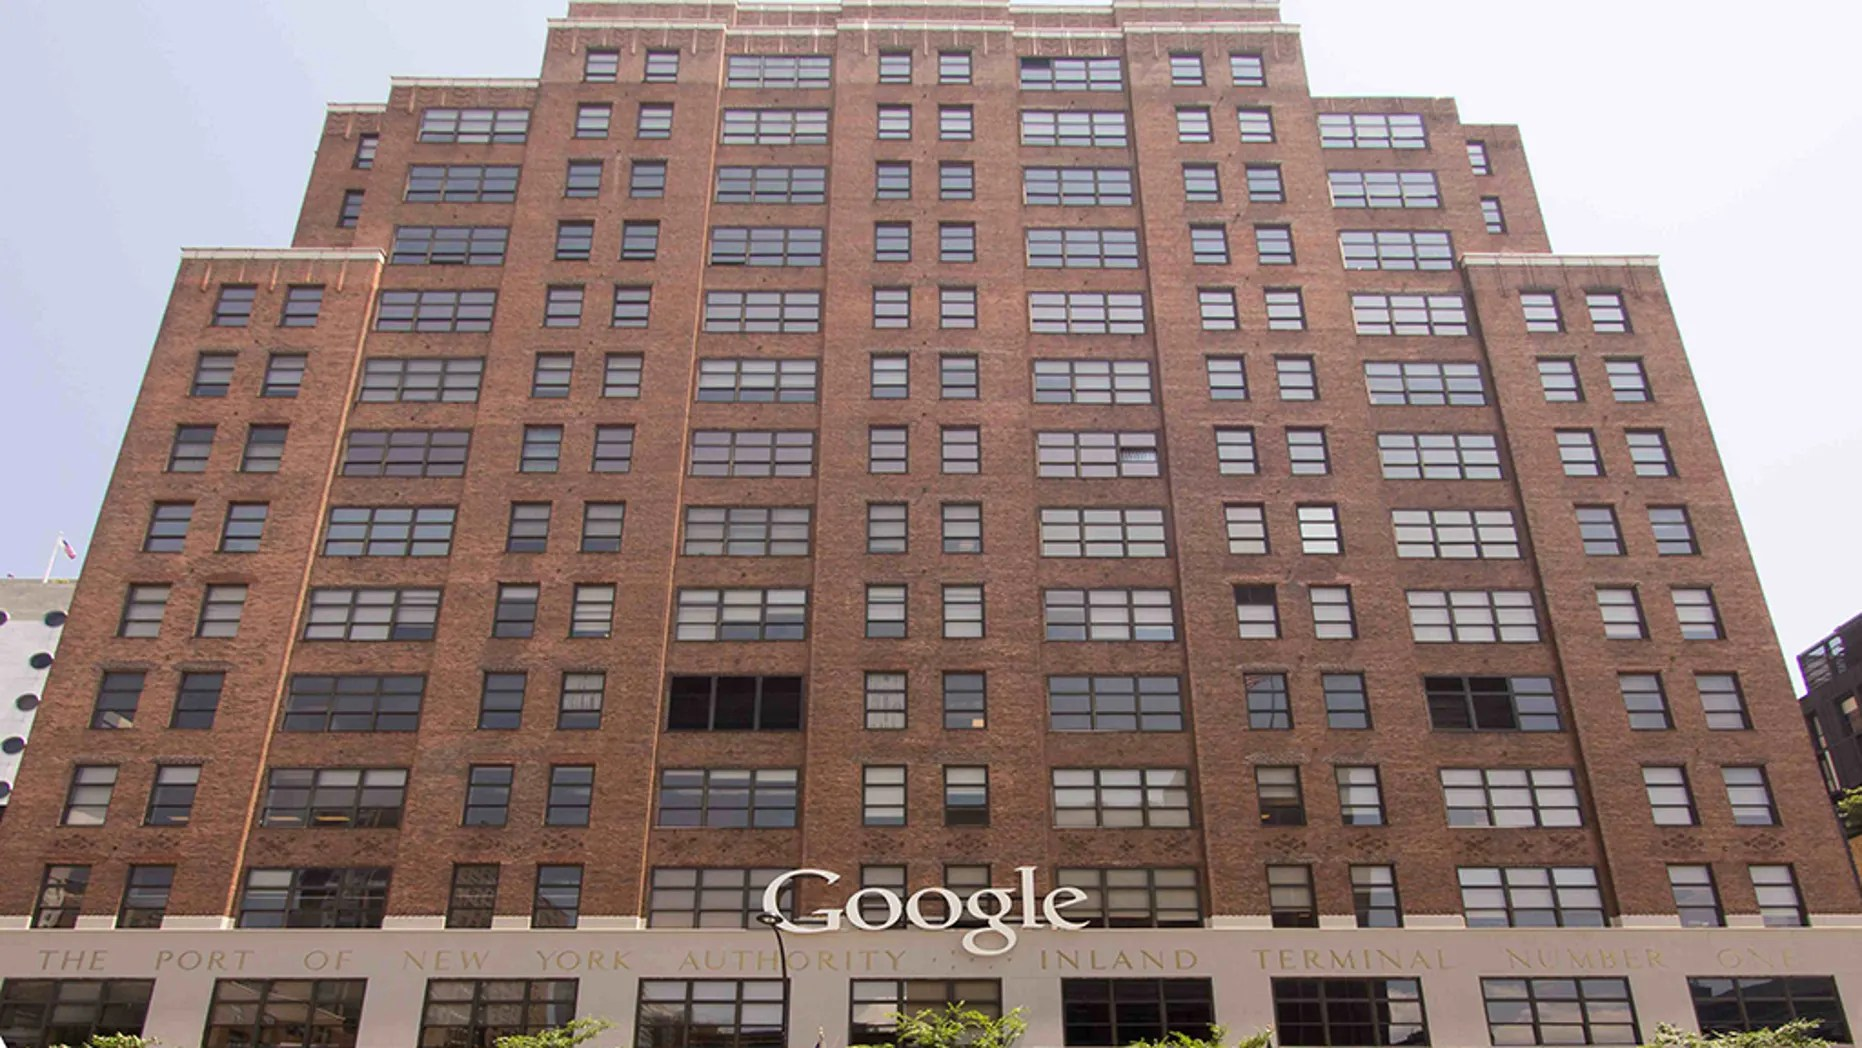 A male employee was found dead in Google's headquarters in New York City on Friday, Dec. 7, 2018.